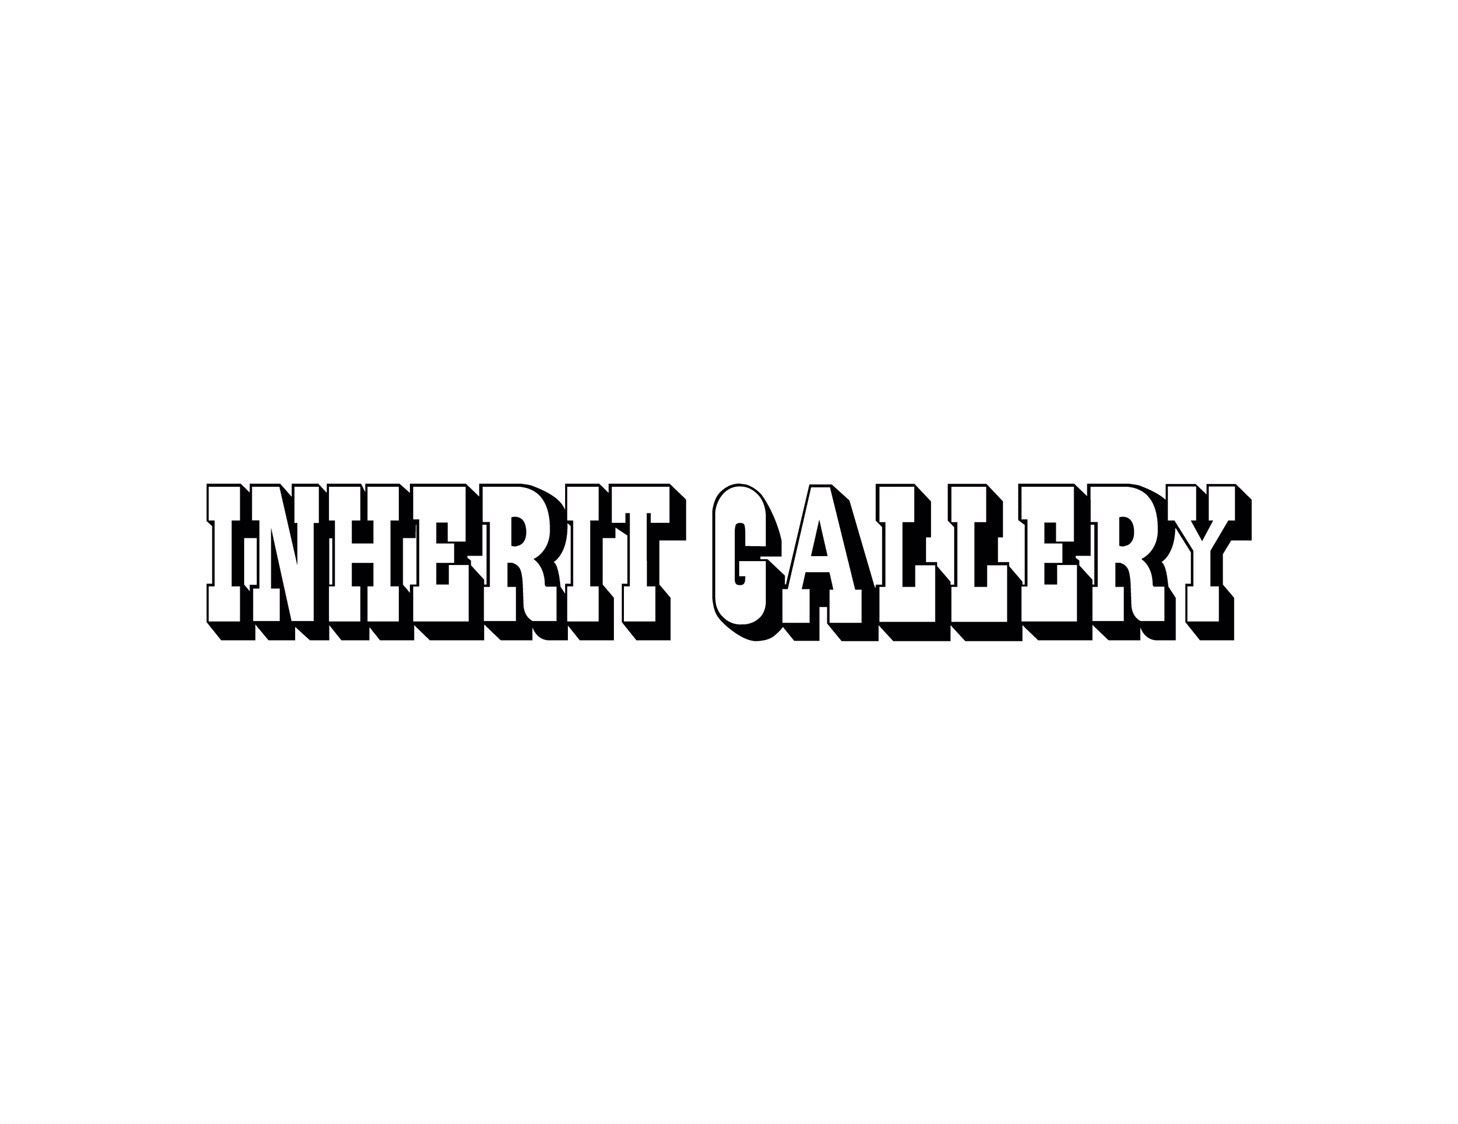 Inherit Gallery STORE